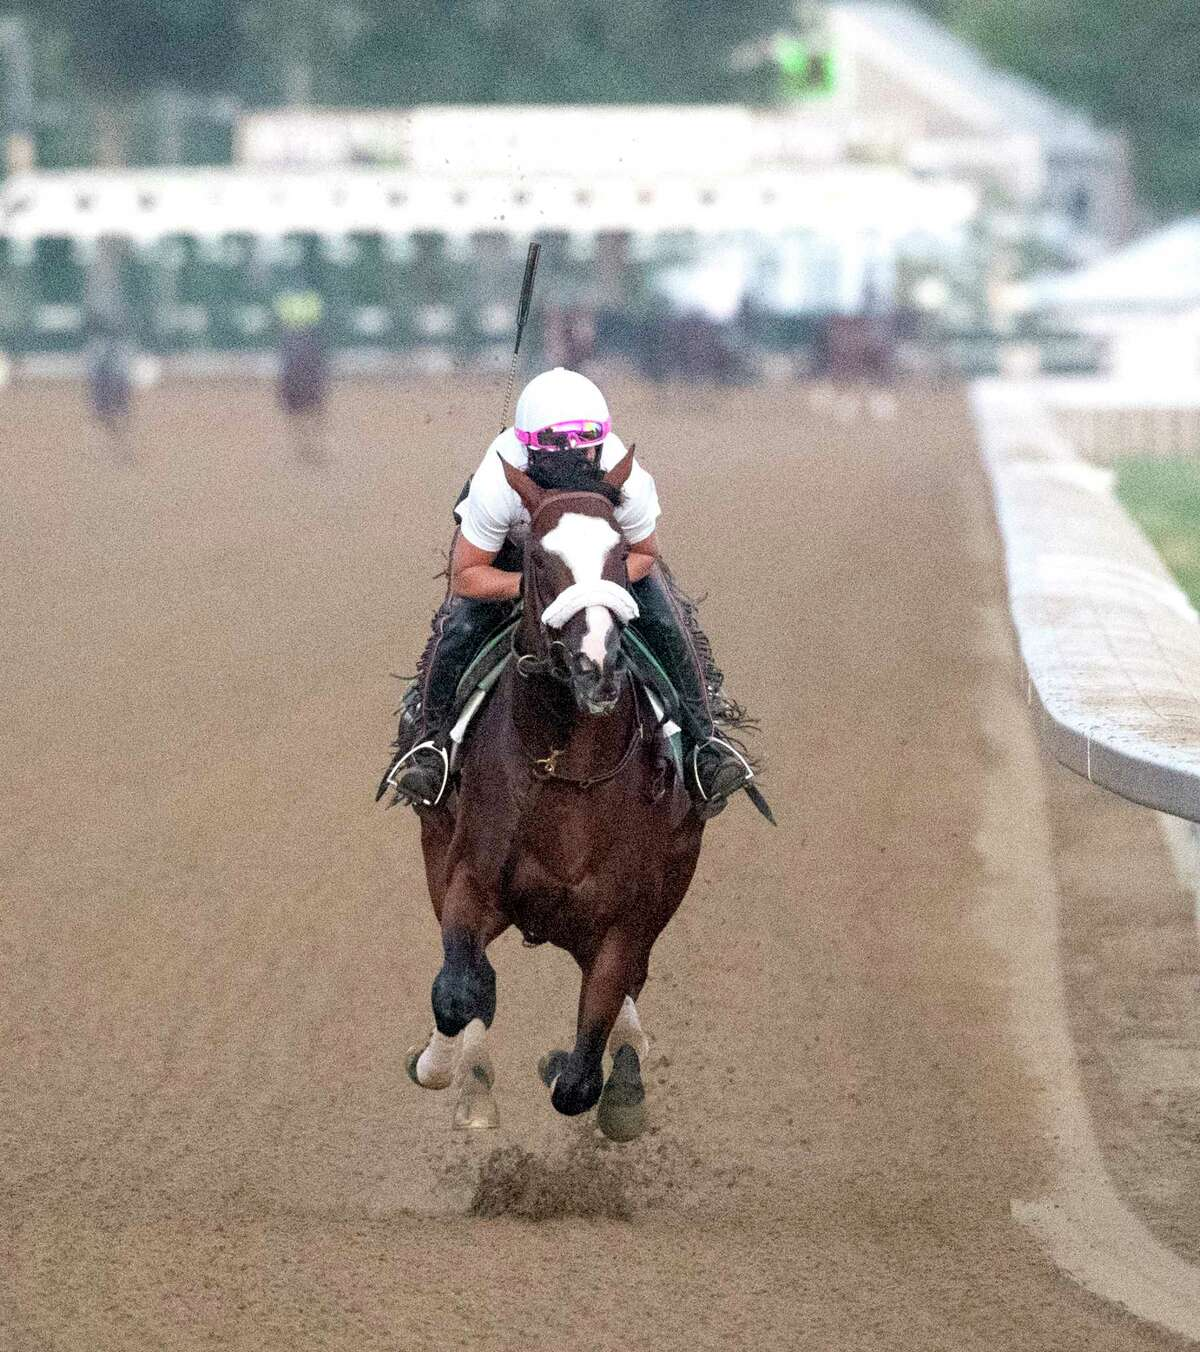 Tiz the Law with regular exerciser rider Heather Smullen aboard goes out for his final tuneup Saturday Aug. 1, 2020 for the Travers Stakes at the Saratoga Race Course in Saratoga Springs, N.Y. The Travers will be held next Saturday Aug. 8th at the historic facility. Photo by Skip Dickstein/Special to the Times Union